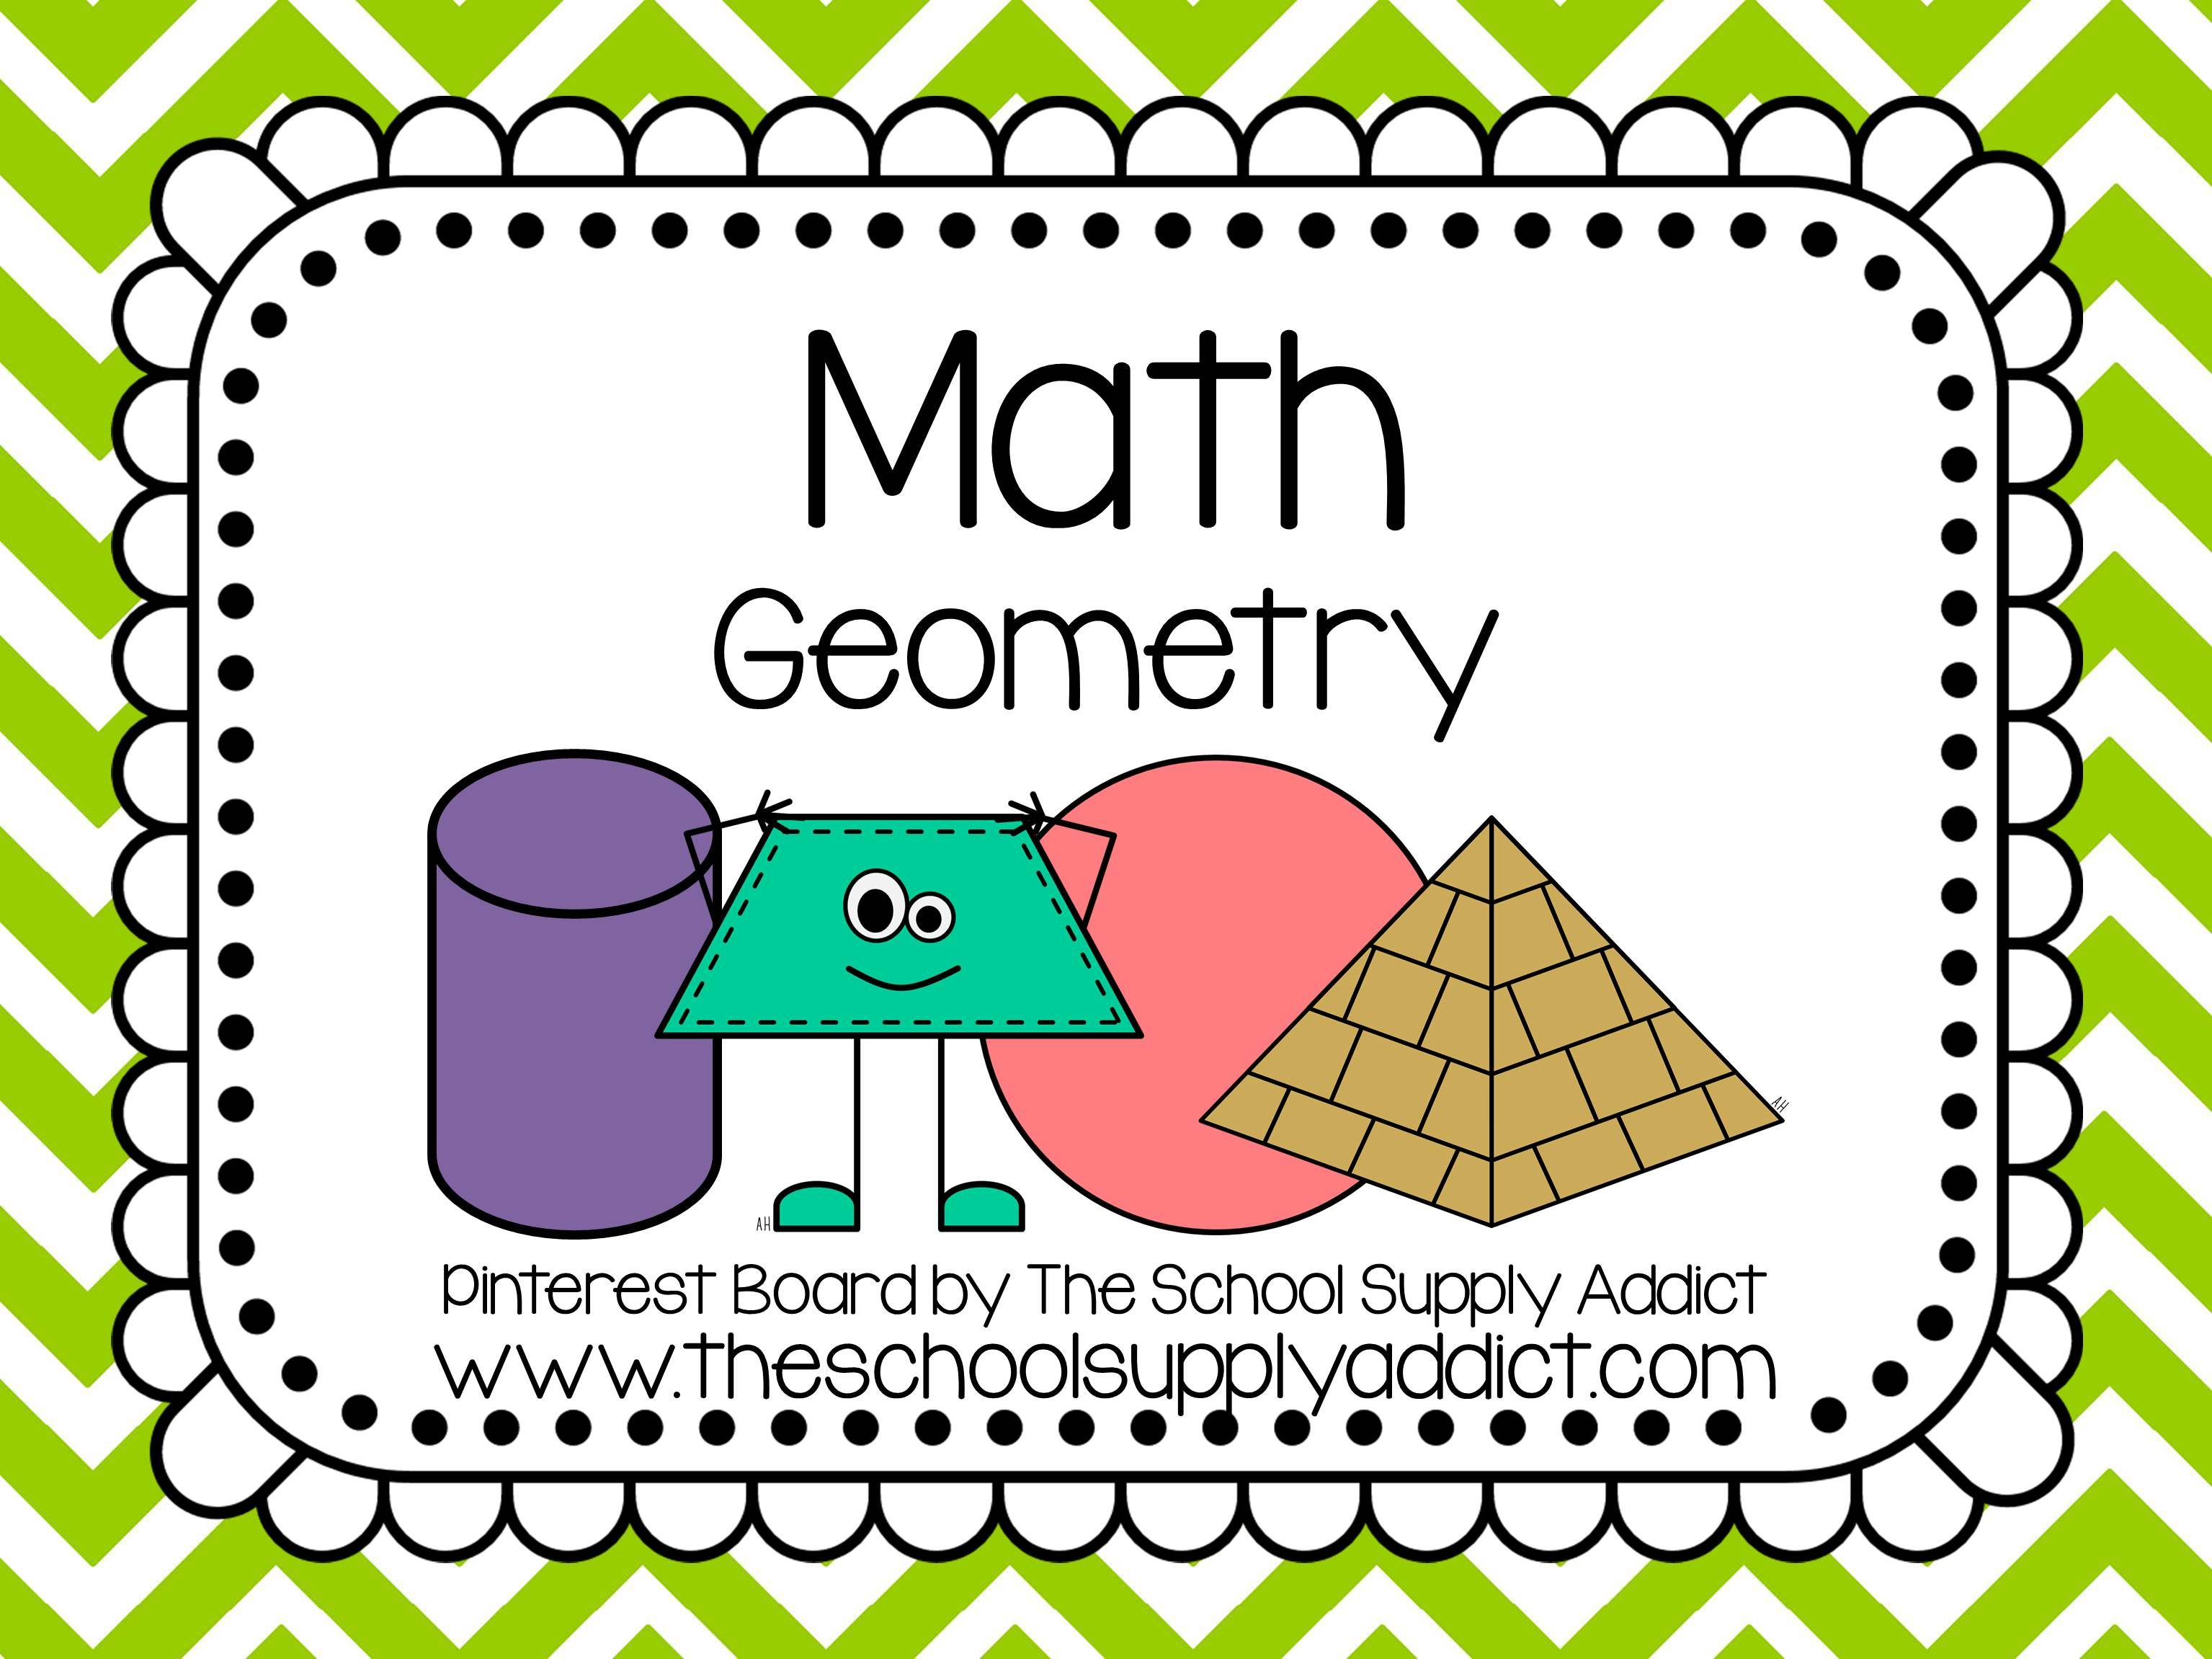 Geometry Pin Board By The School Supply Addict